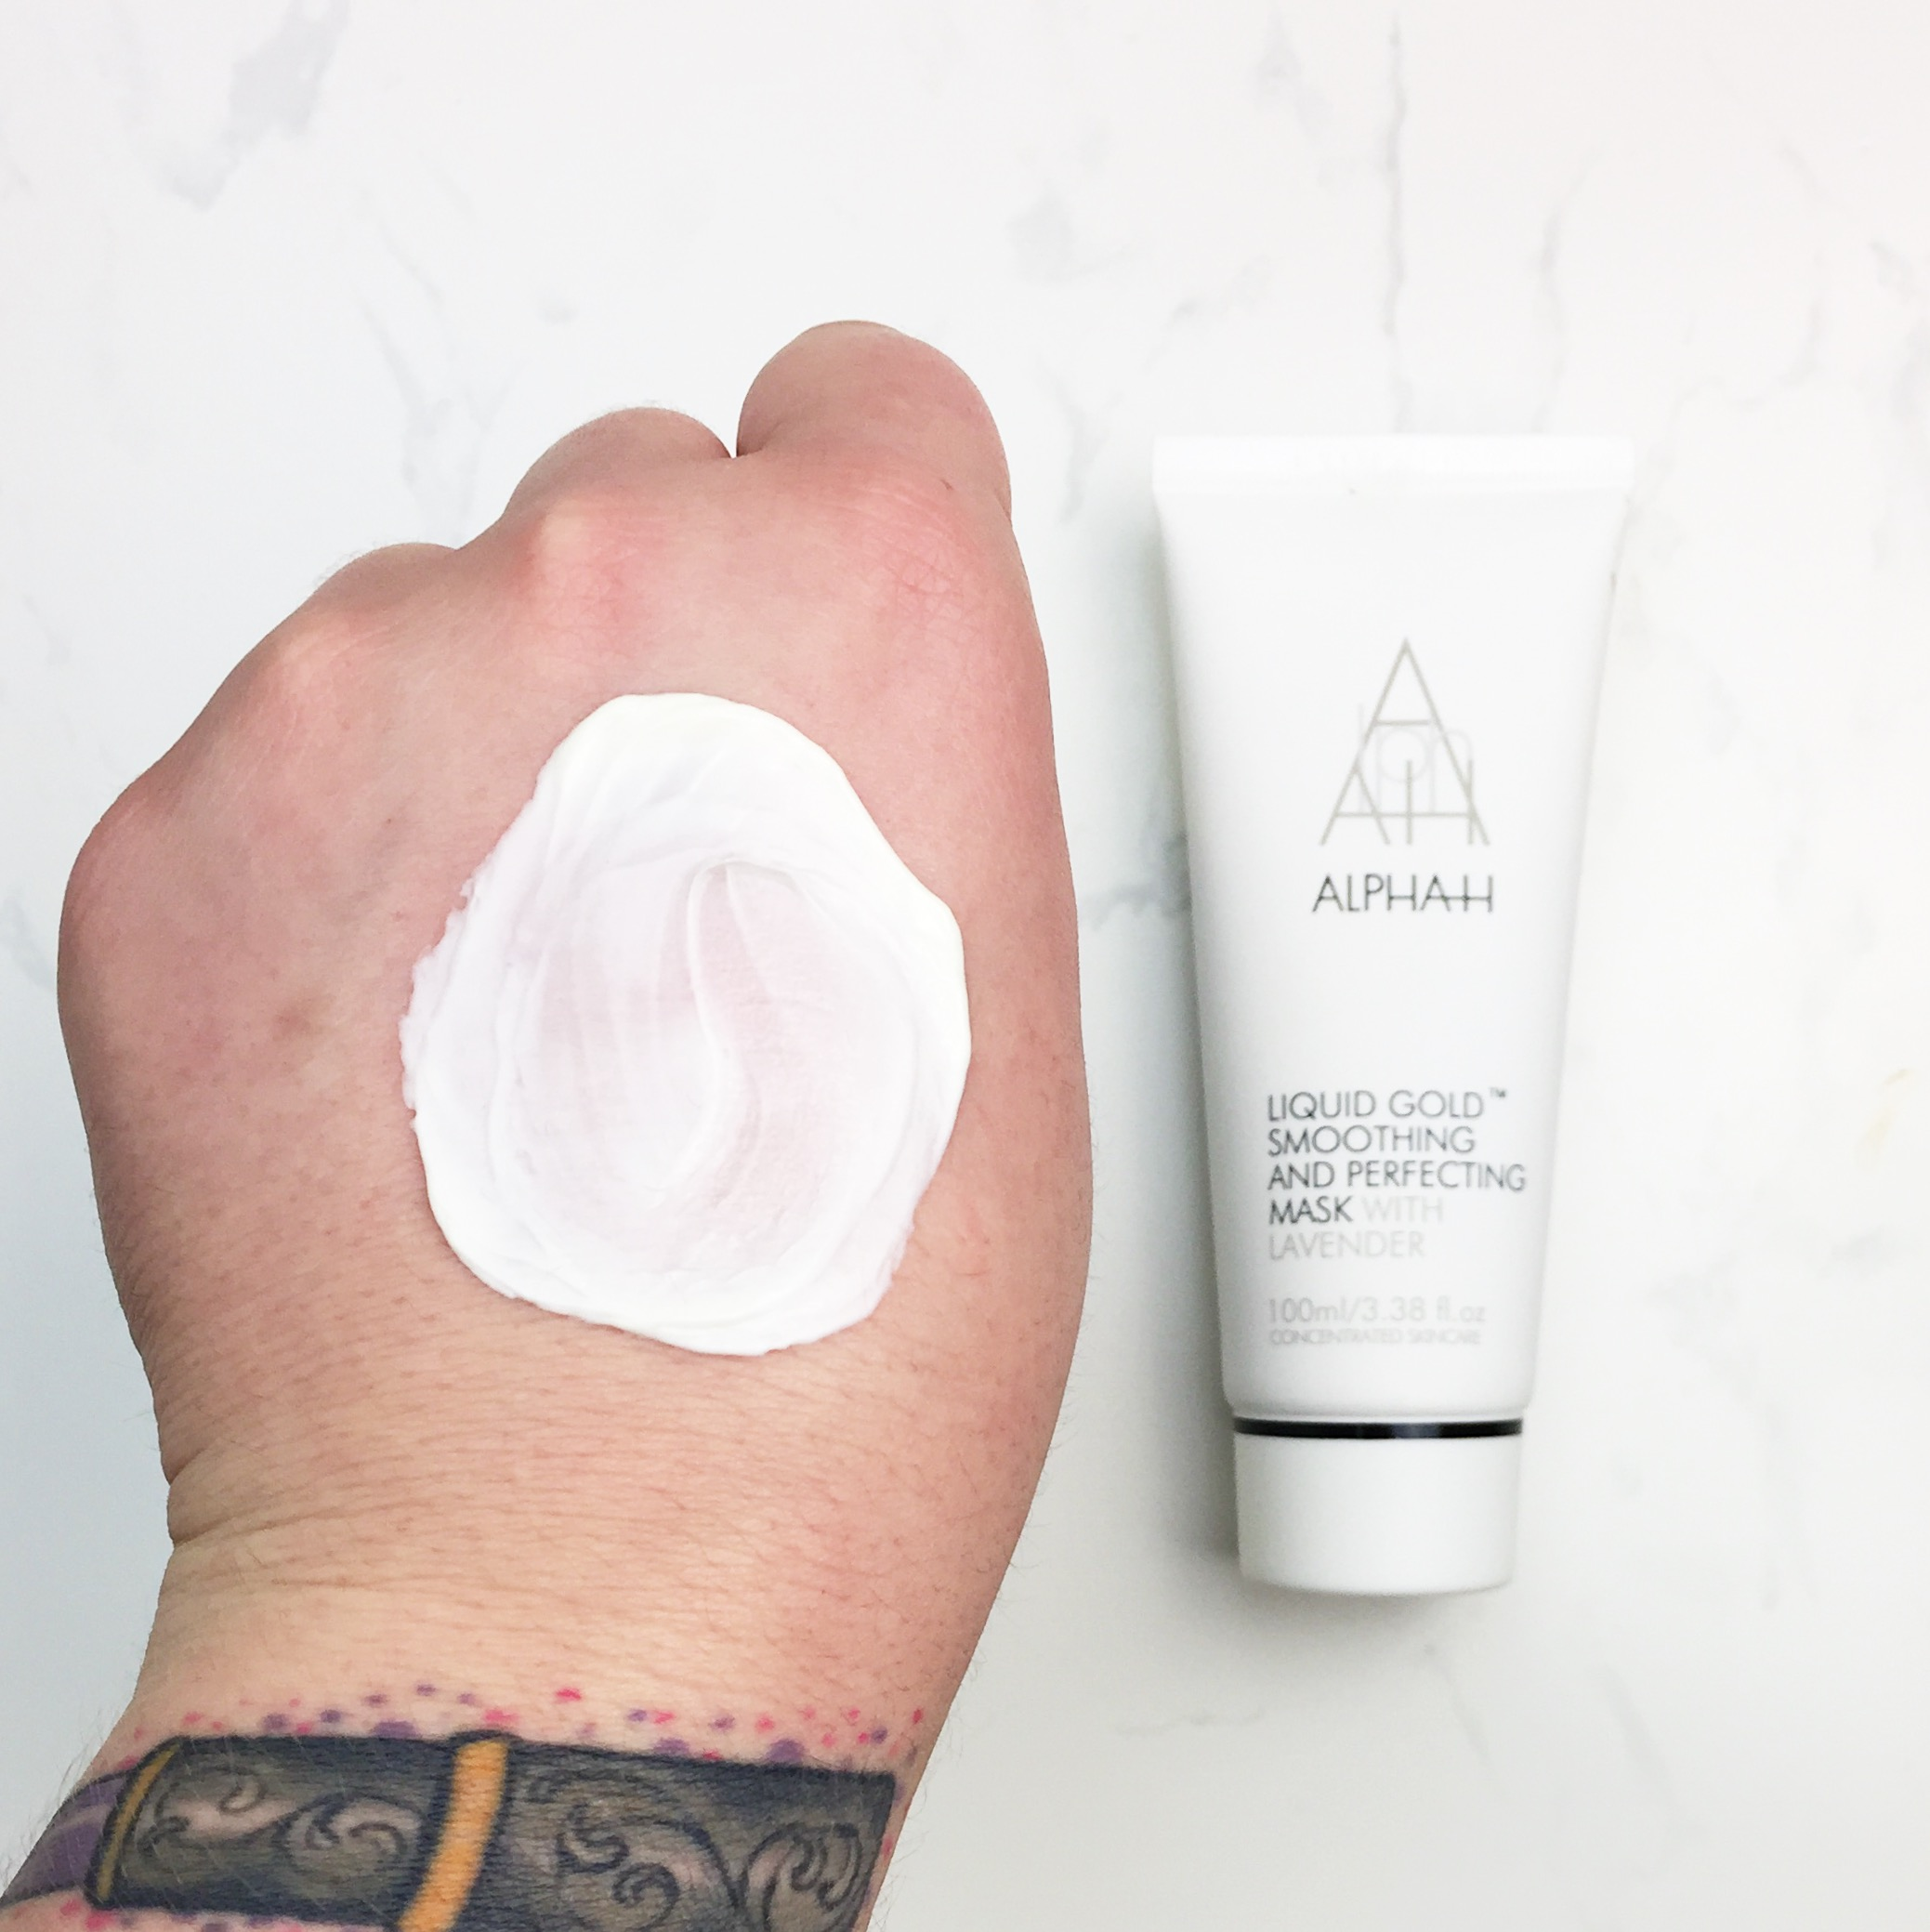 Marisa Robinson Beauty Blogger Ace Your Base Face Masks Alpha H Liquid Gold Smoothing and Perfecting Mask